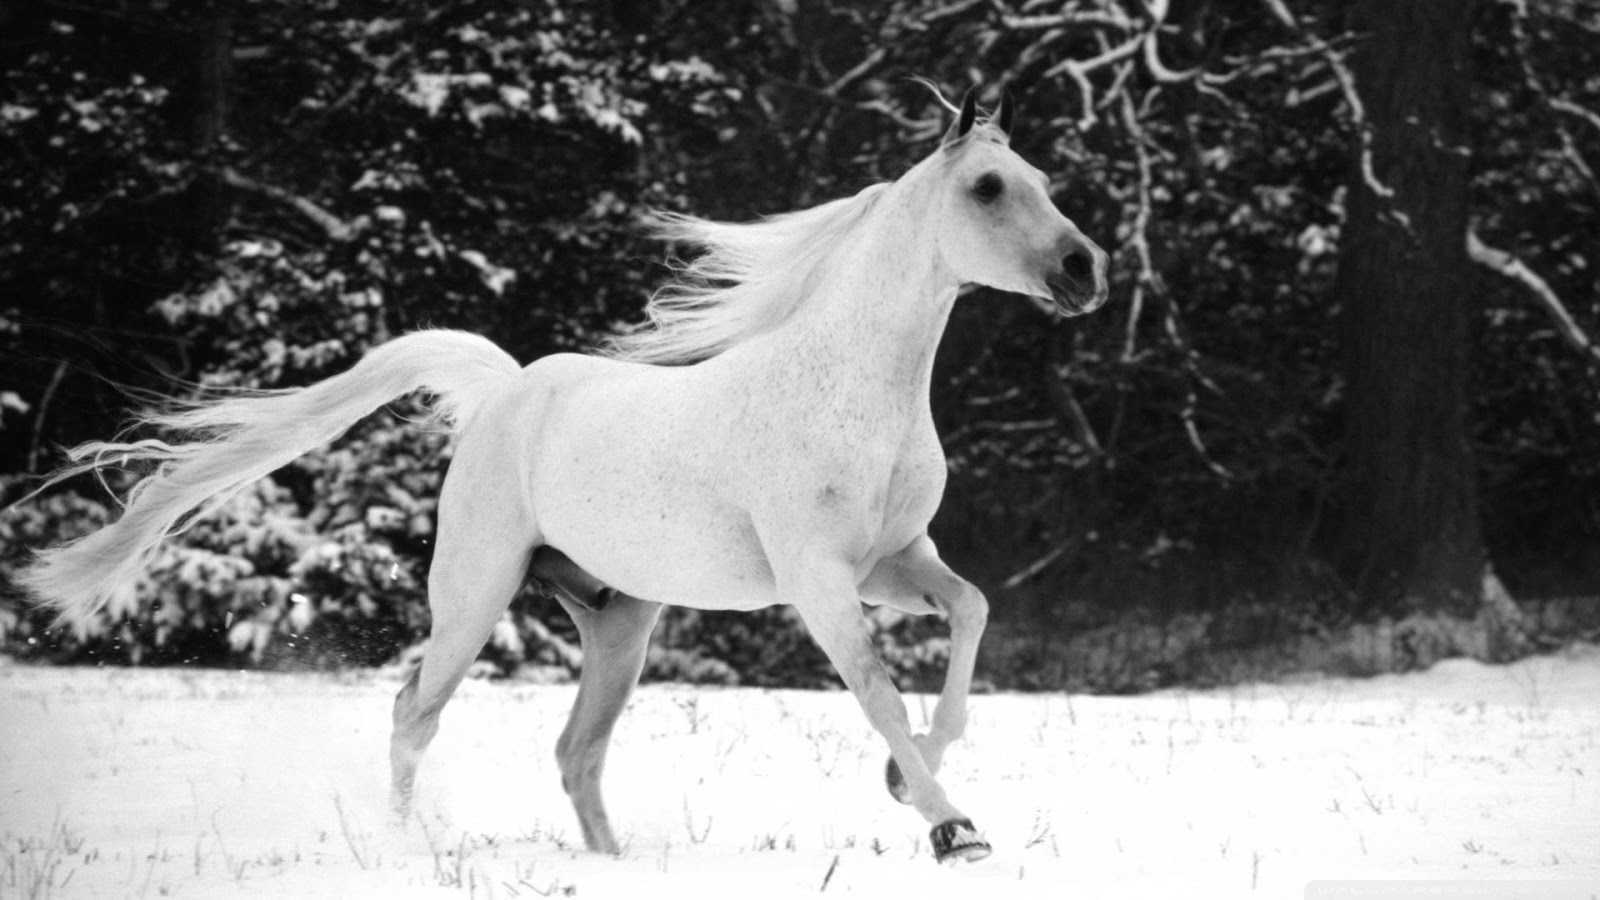 Most Inspiring   Wallpaper Horse Dark Brown - Running+White+Horse+In+Snow+wallpaper+(3)  2018_337568.jpg